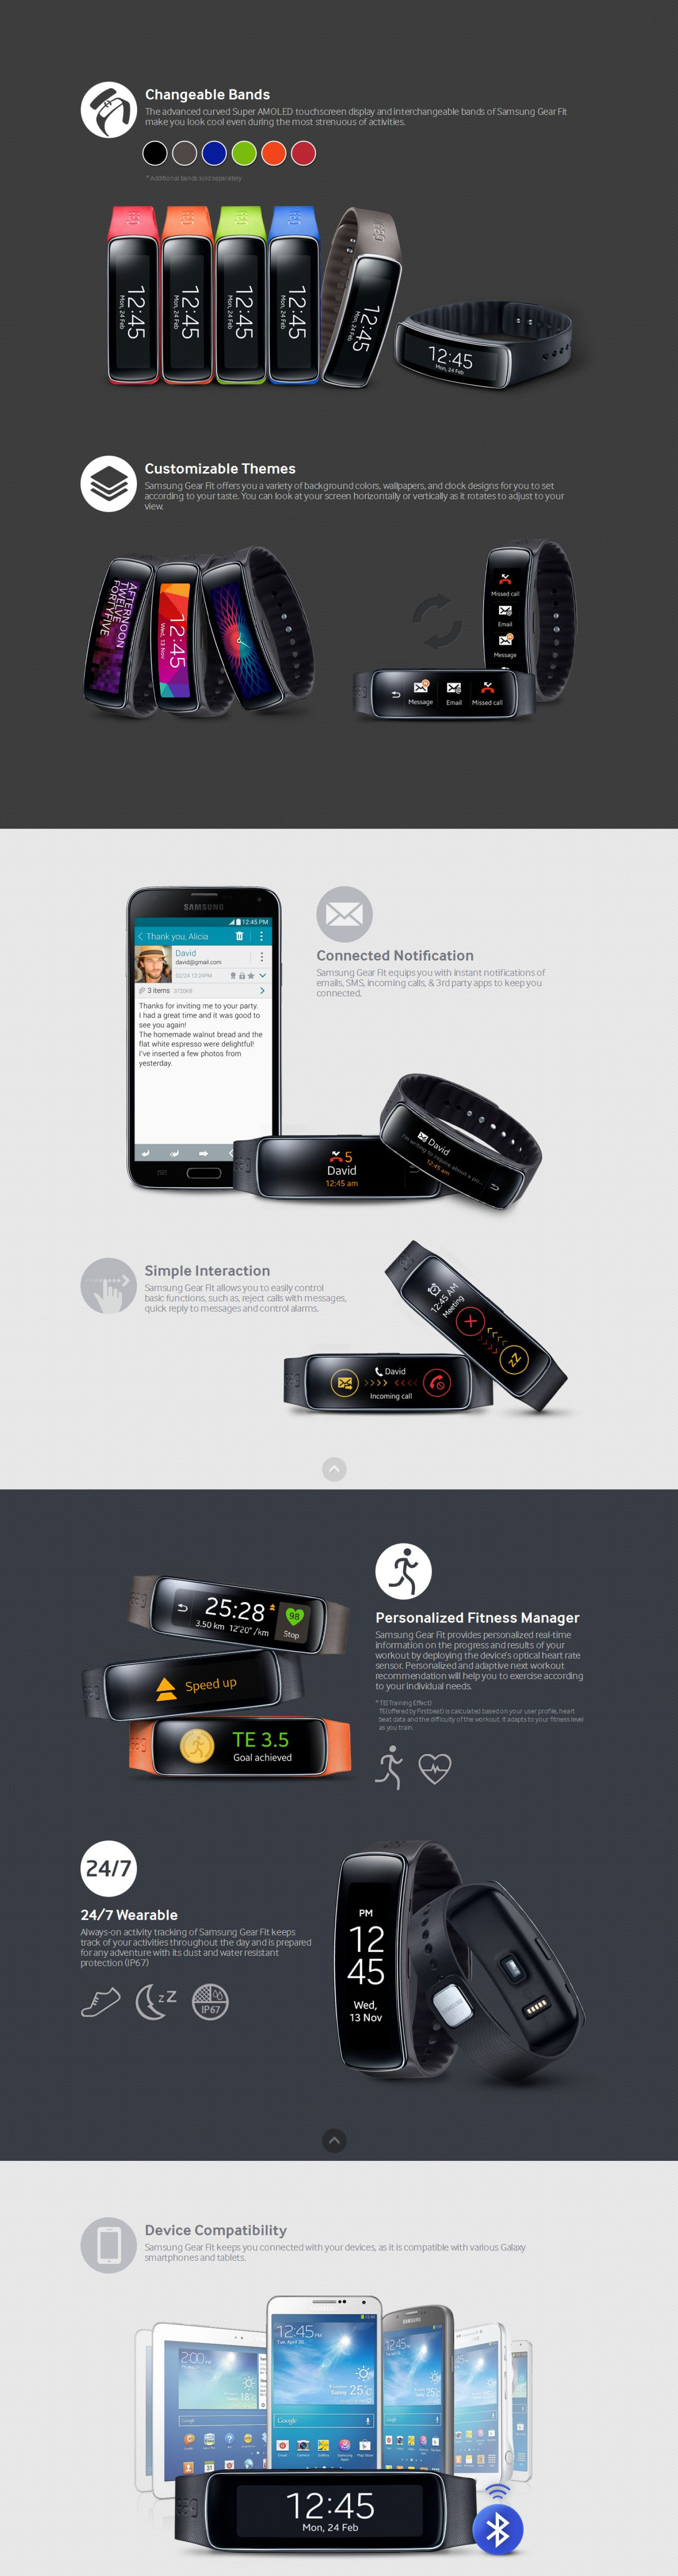 Samsung Gear Fit Infographic